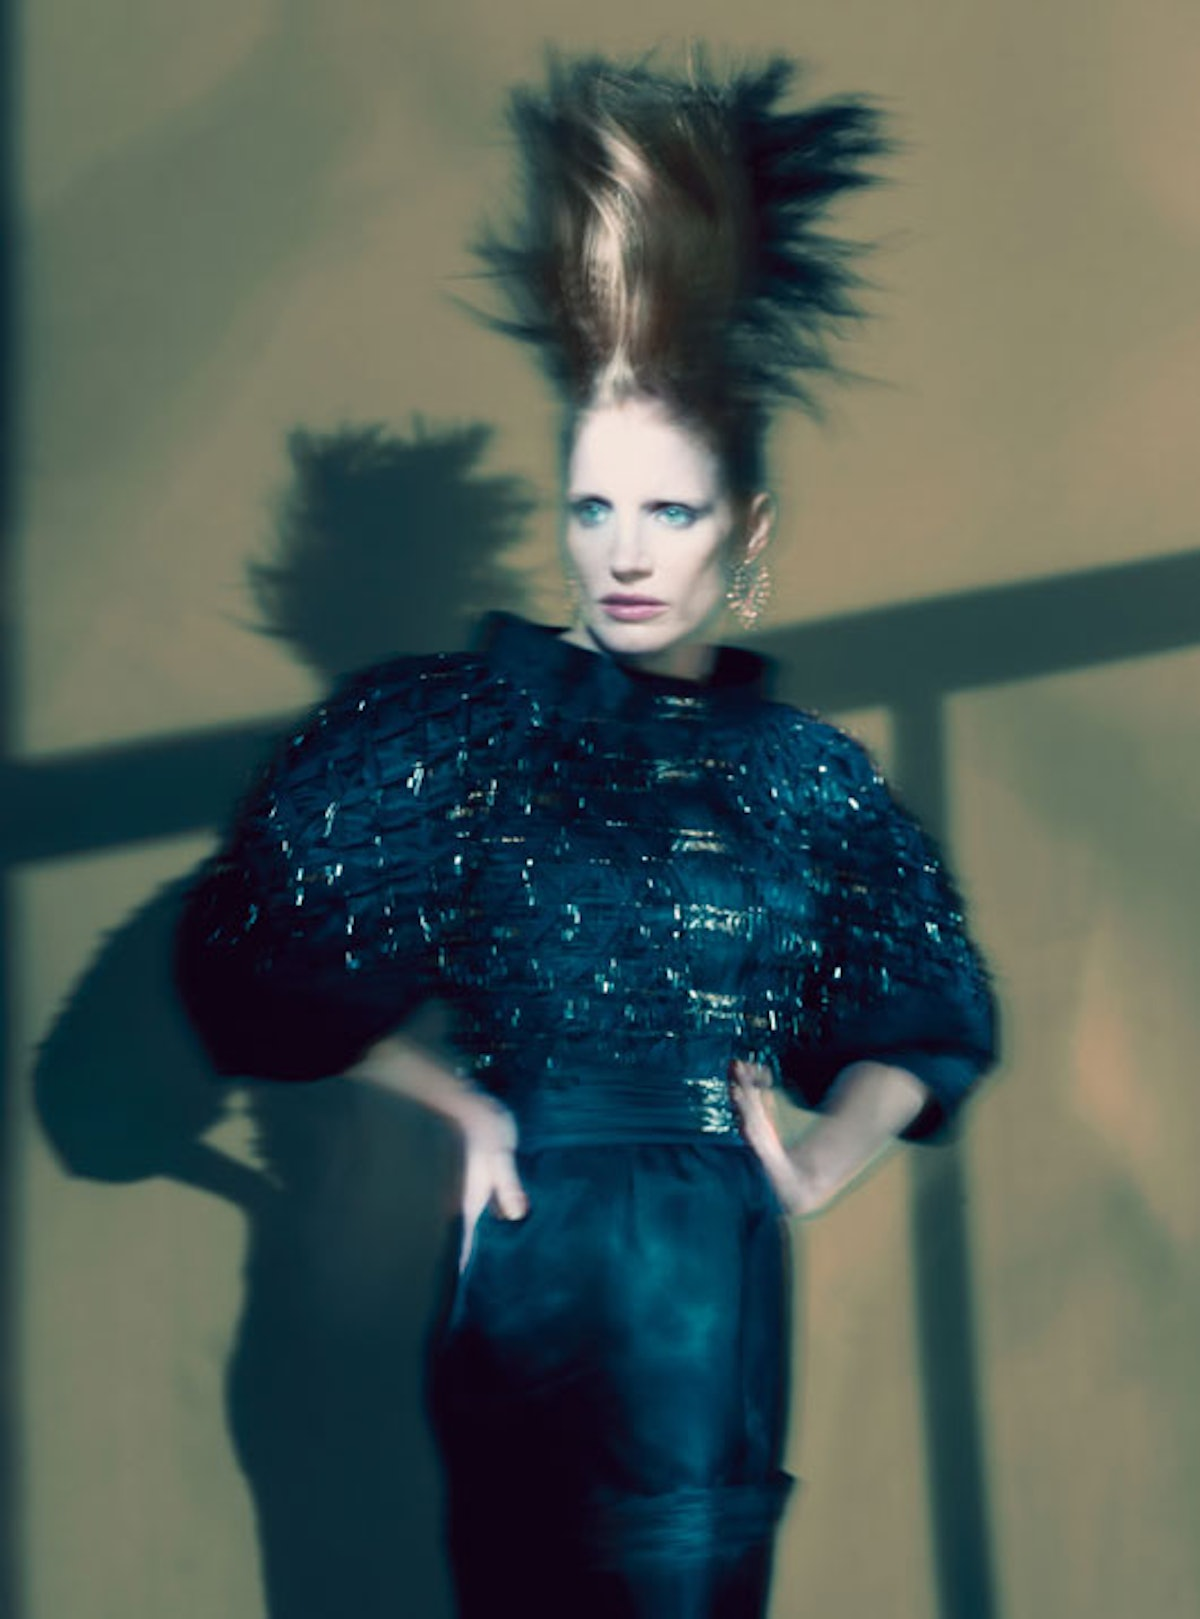 fass-jessica-chastain-actress-04-l.jpg